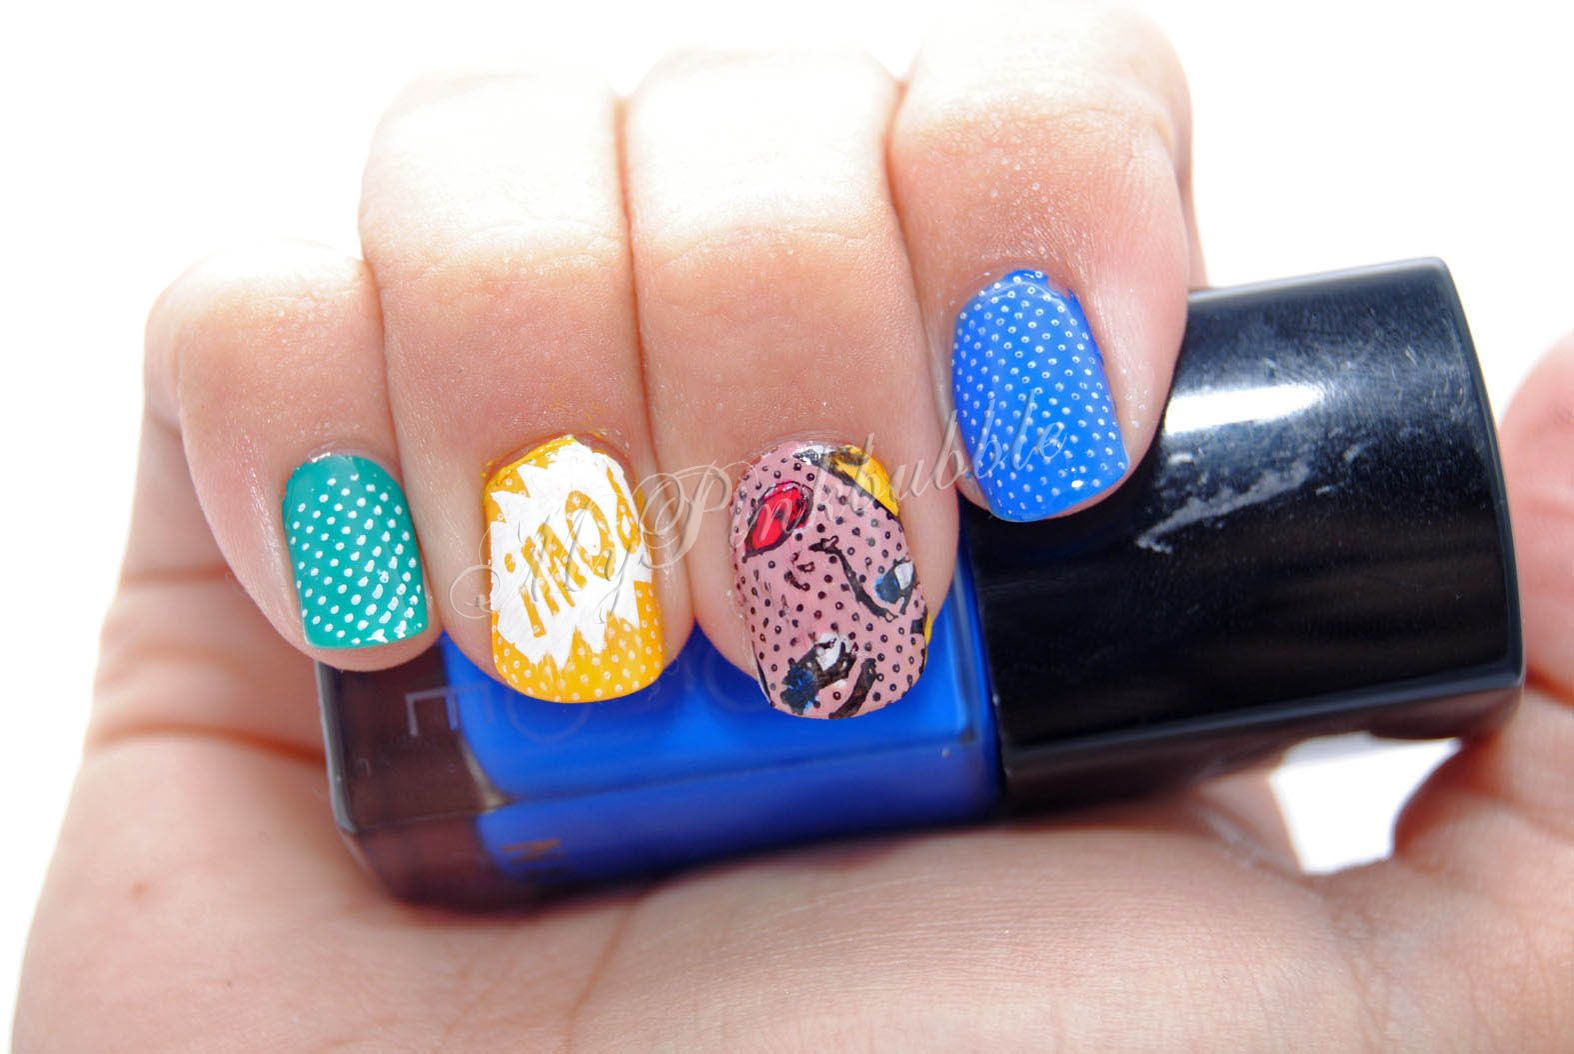 Nails comic Moyou London stamping